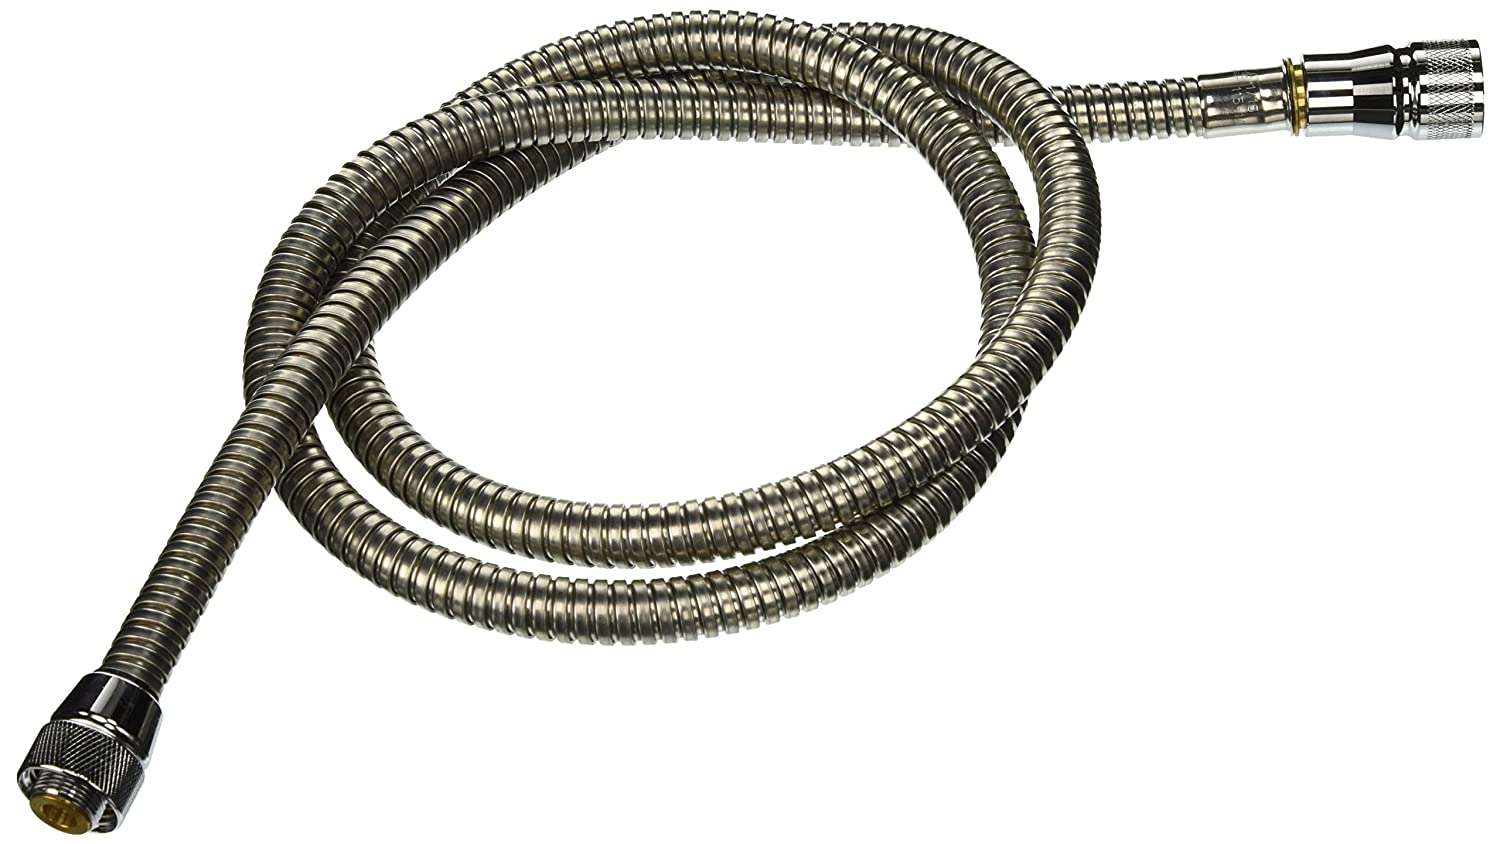 Grohe 46 174 000 Hose for K4 and Ladylux Cafe Faucets, 59-Inch ...